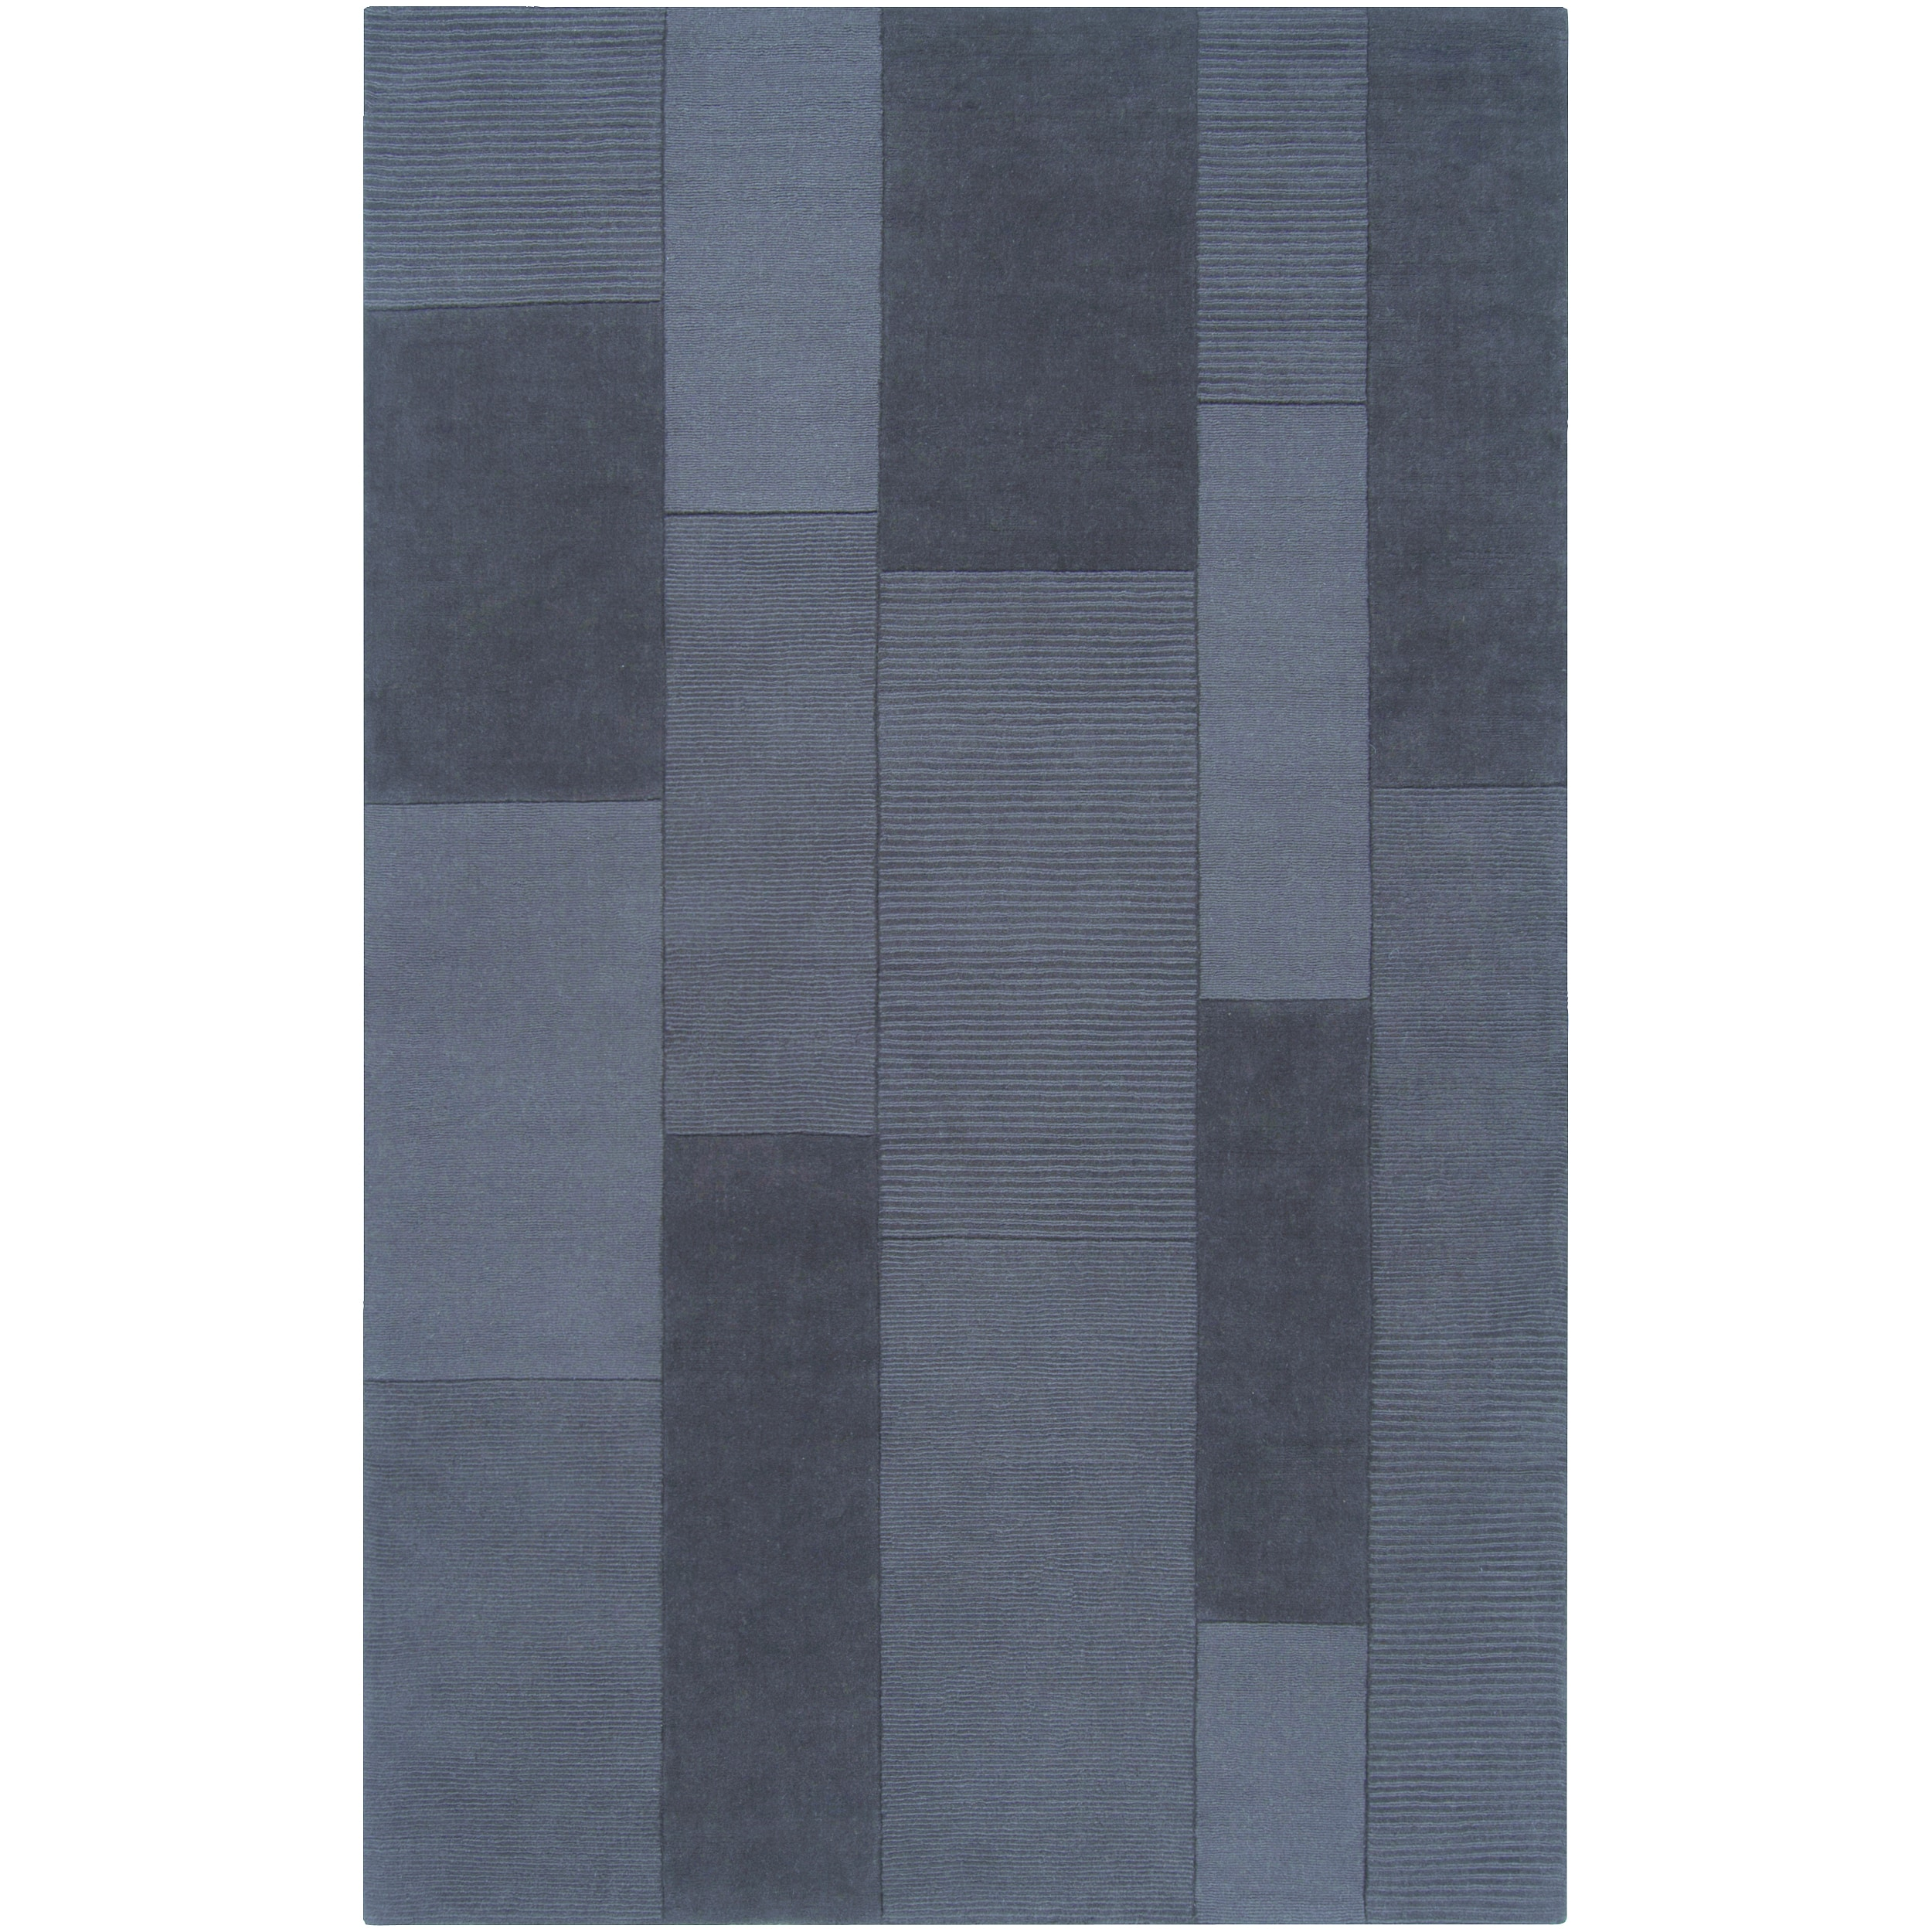 Hand-crafted Solid Casual Blue Pebble Wool Rug (5' x 8')